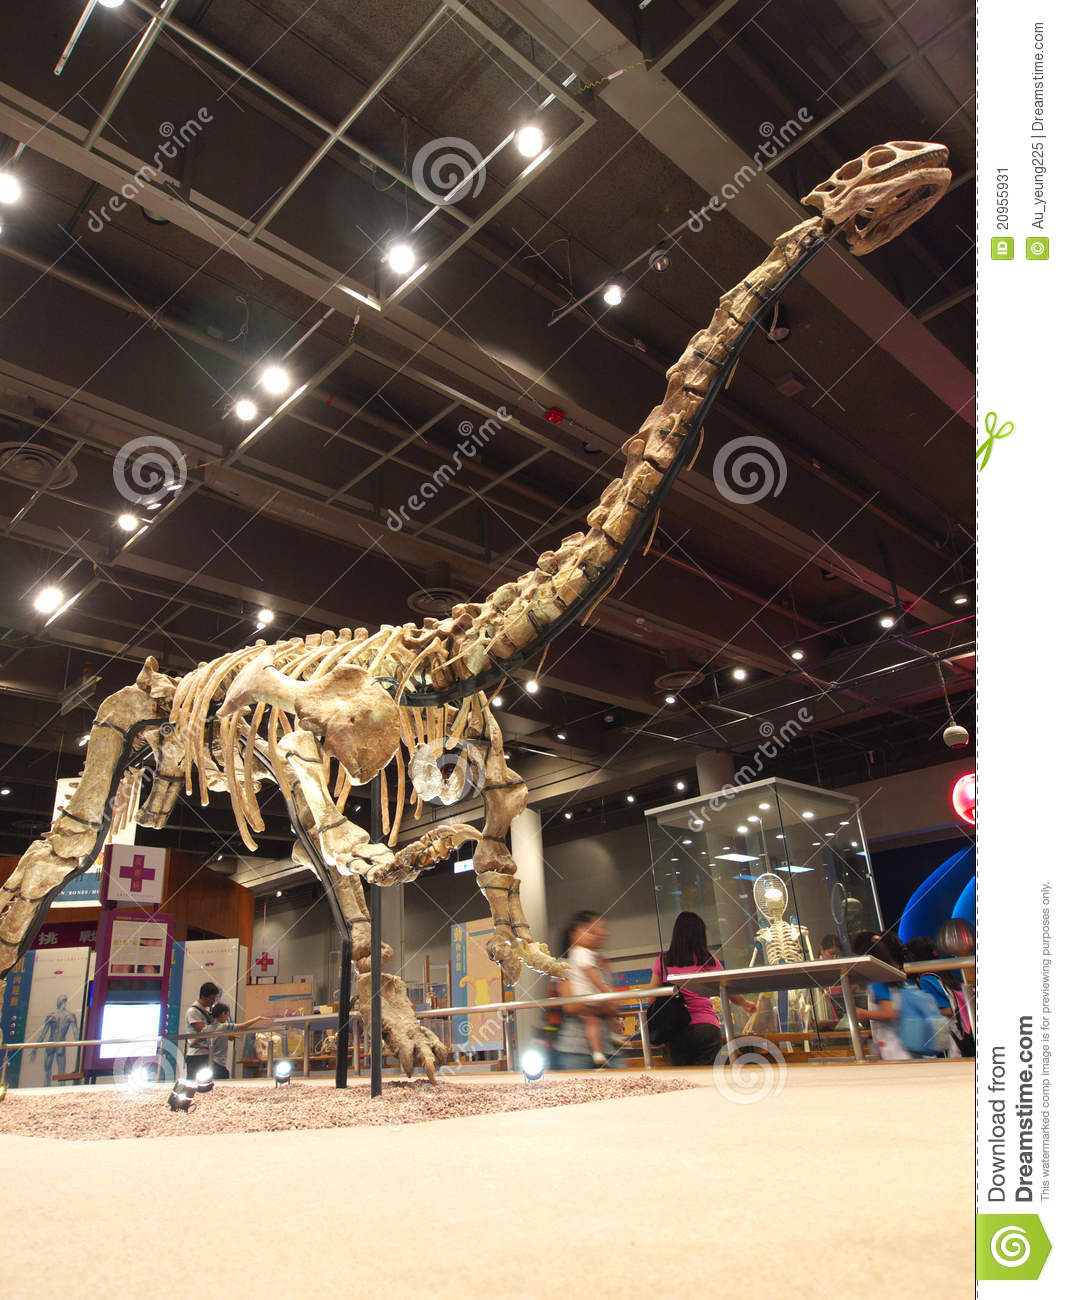 Lufengosaurus Magnus in Hong Kong Science Museum